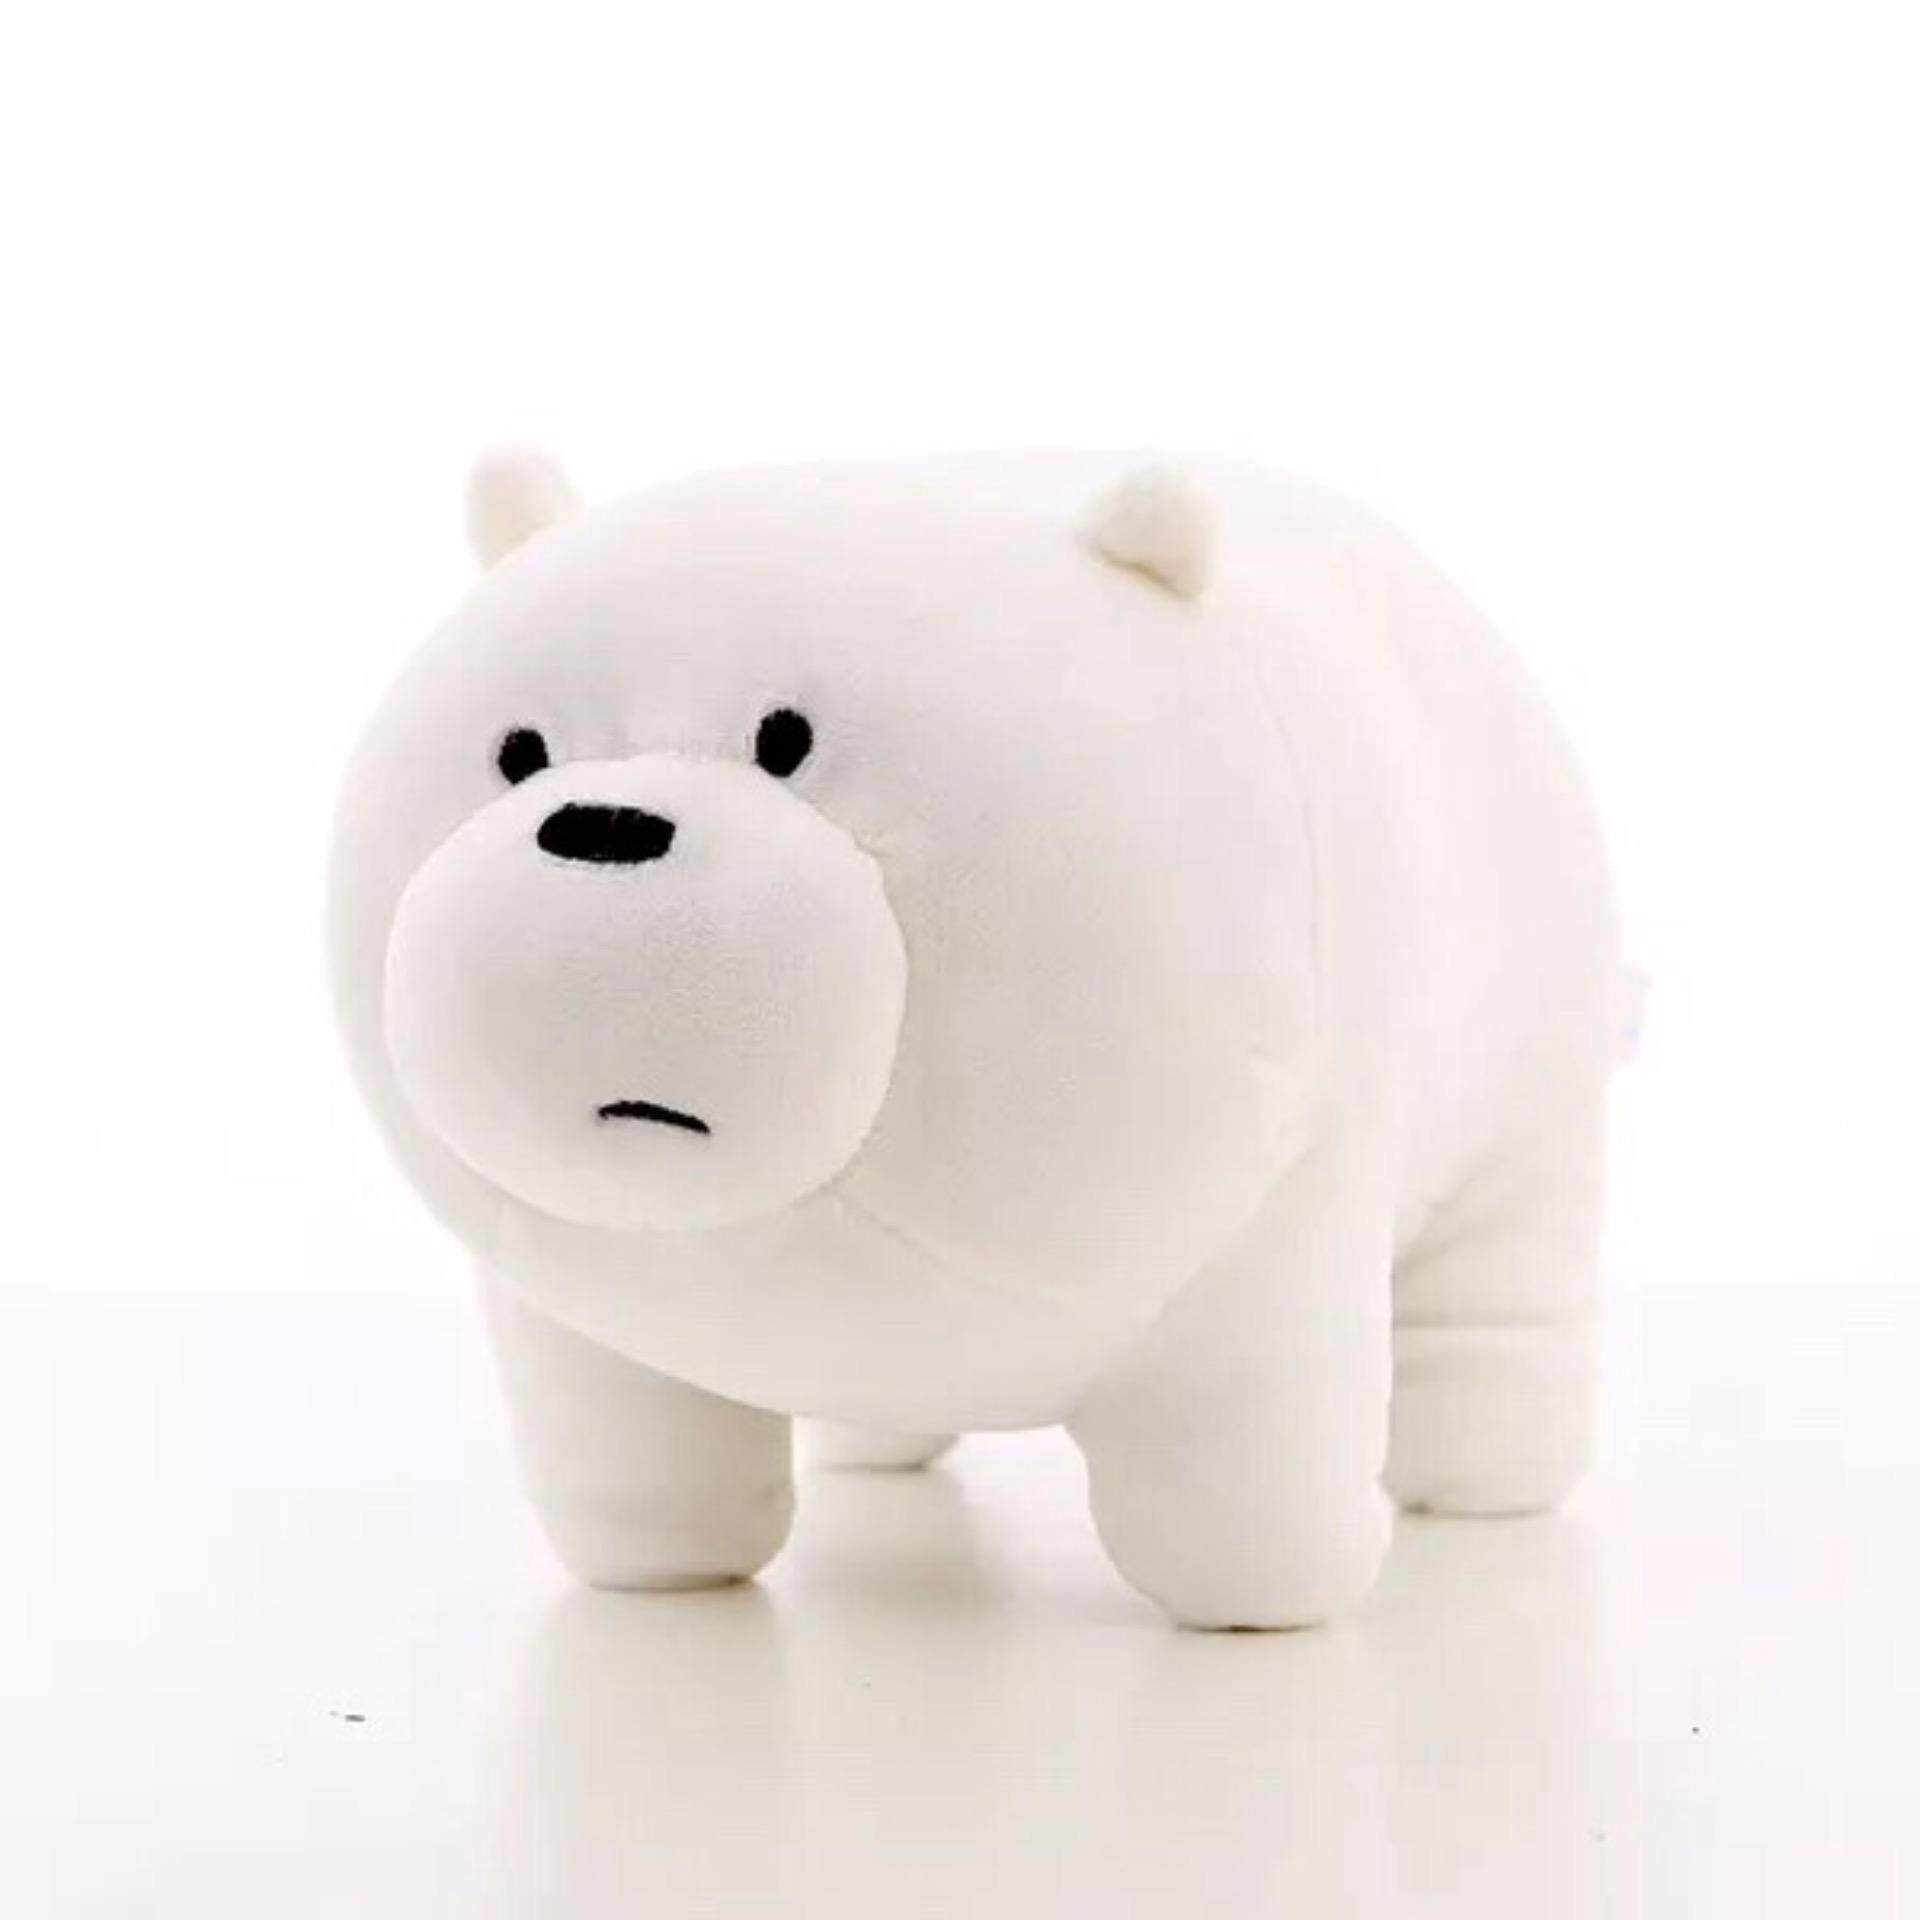 13ccca8e0e1 Toys   Games - Stuffed Toys - Buy Toys   Games - Stuffed Toys at ...